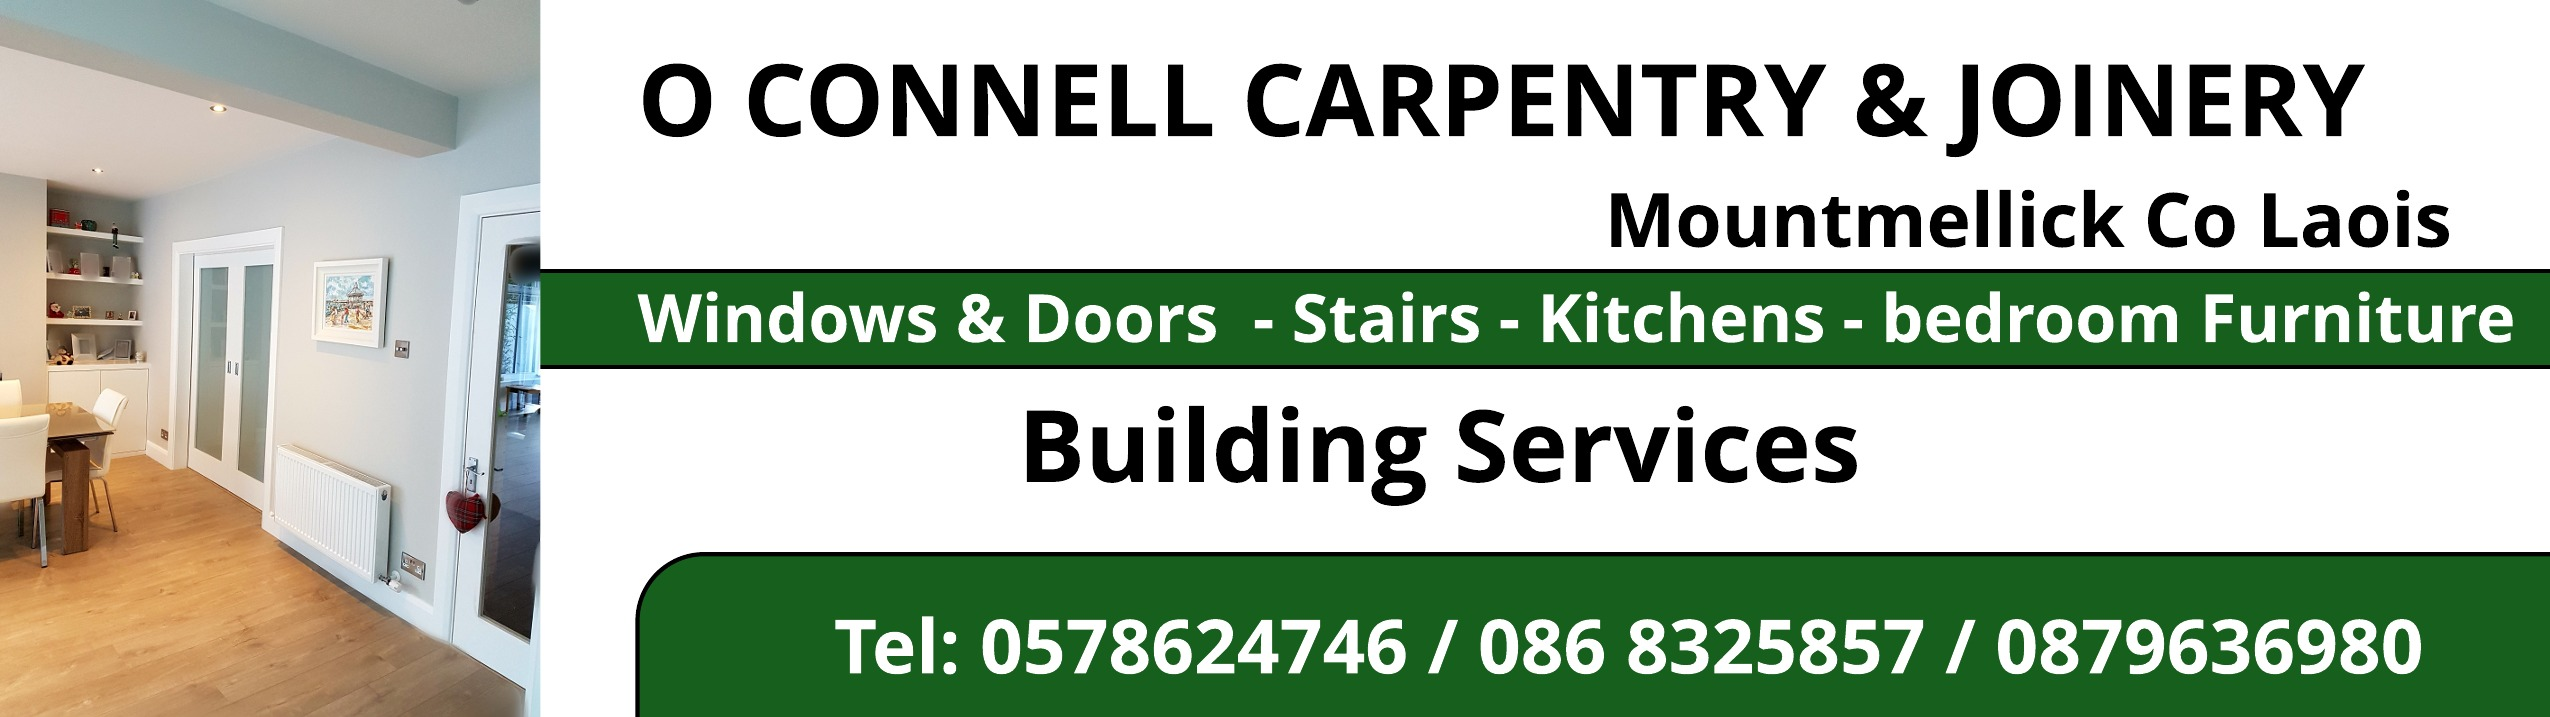 O Connell Carpentry And Joinery Joinery In Mountmellick